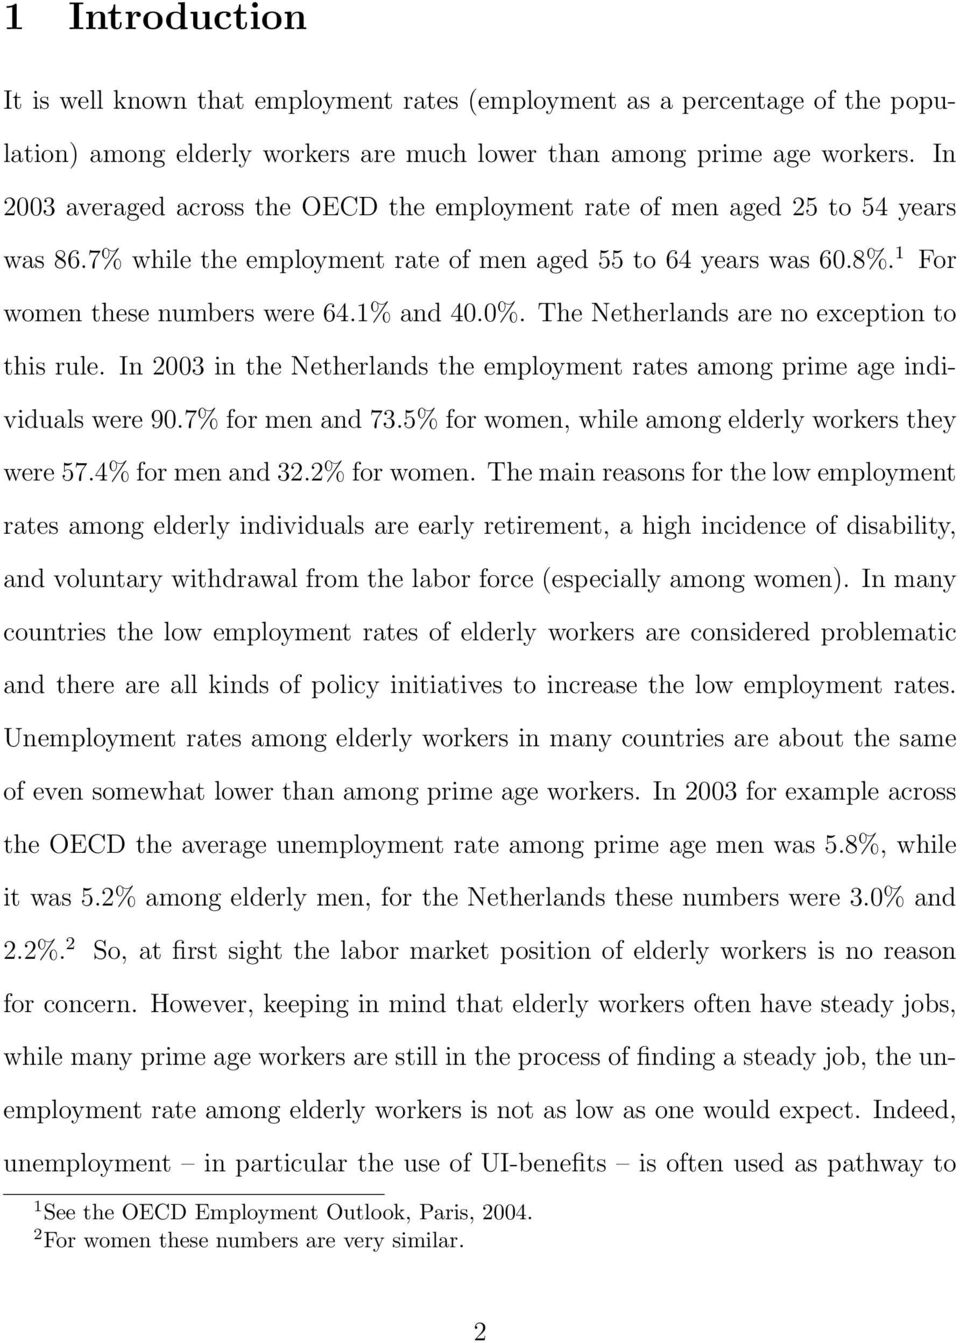 0%. The Netherlands are no exception to this rule. In 2003 in the Netherlands the employment rates among prime age individuals were 90.7% for men and 73.